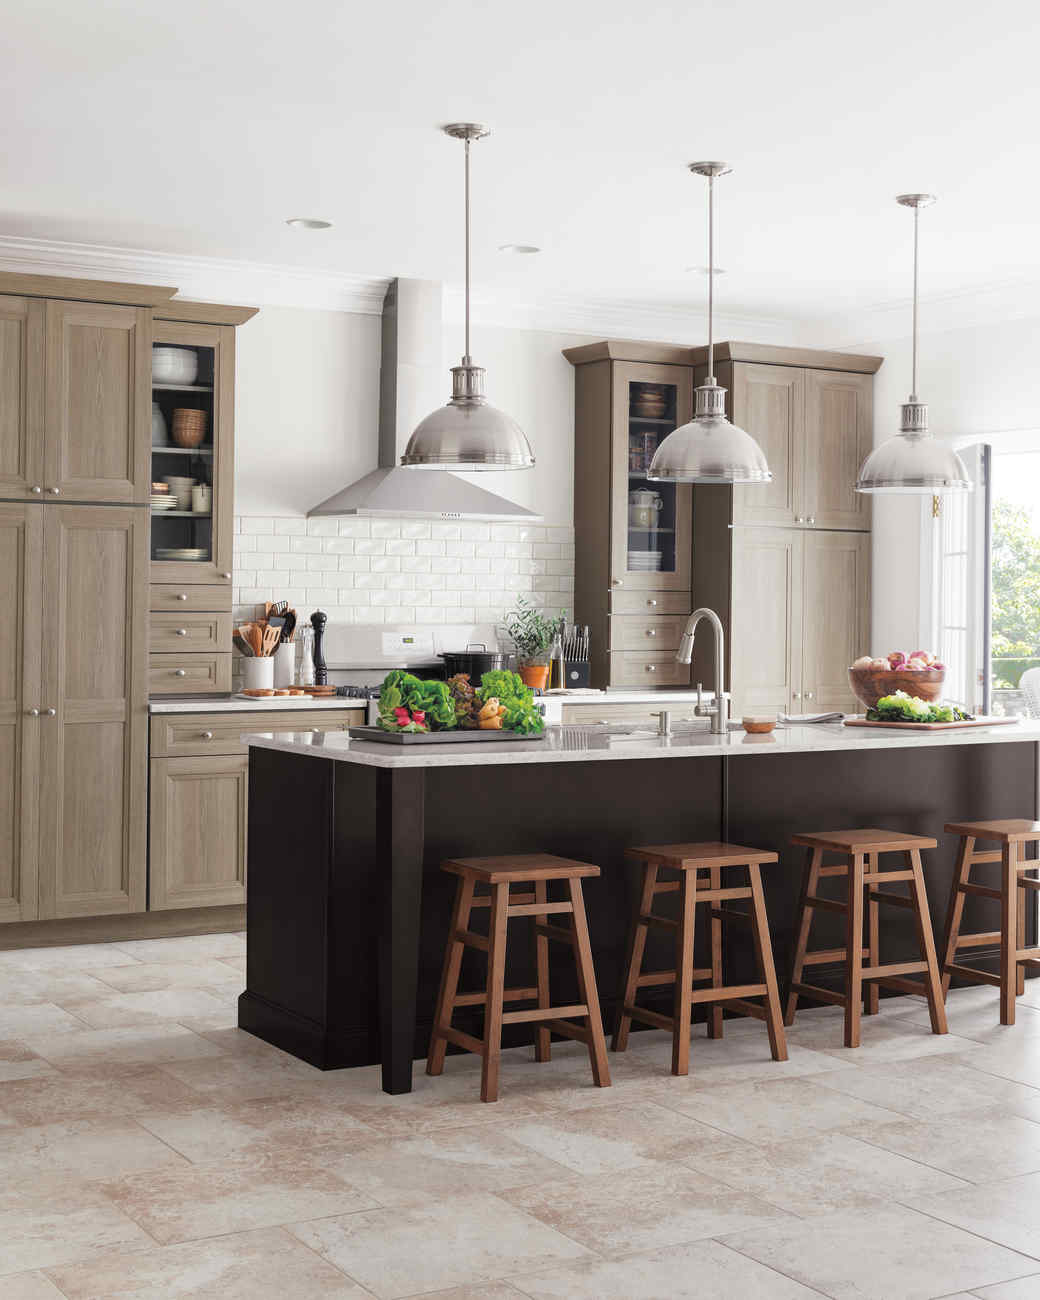 15 Game-Changing Kitchen Remodel Ideas